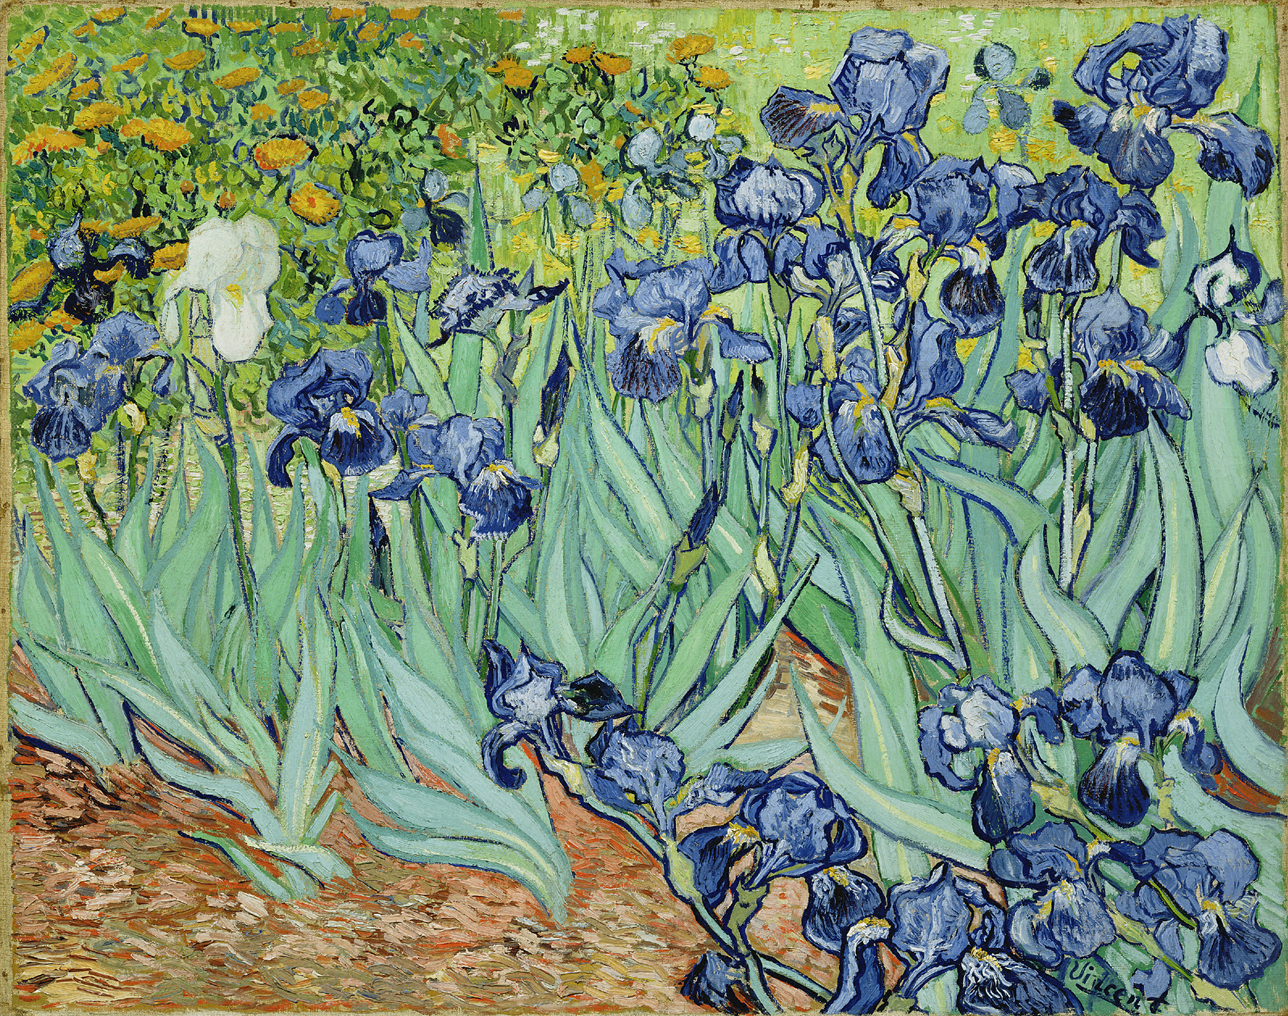 A field of flowers. The foreground includes long green stems with blue flowers, while the background includes prominent gold flowers on the left; white flowers in the center and a field to the right.